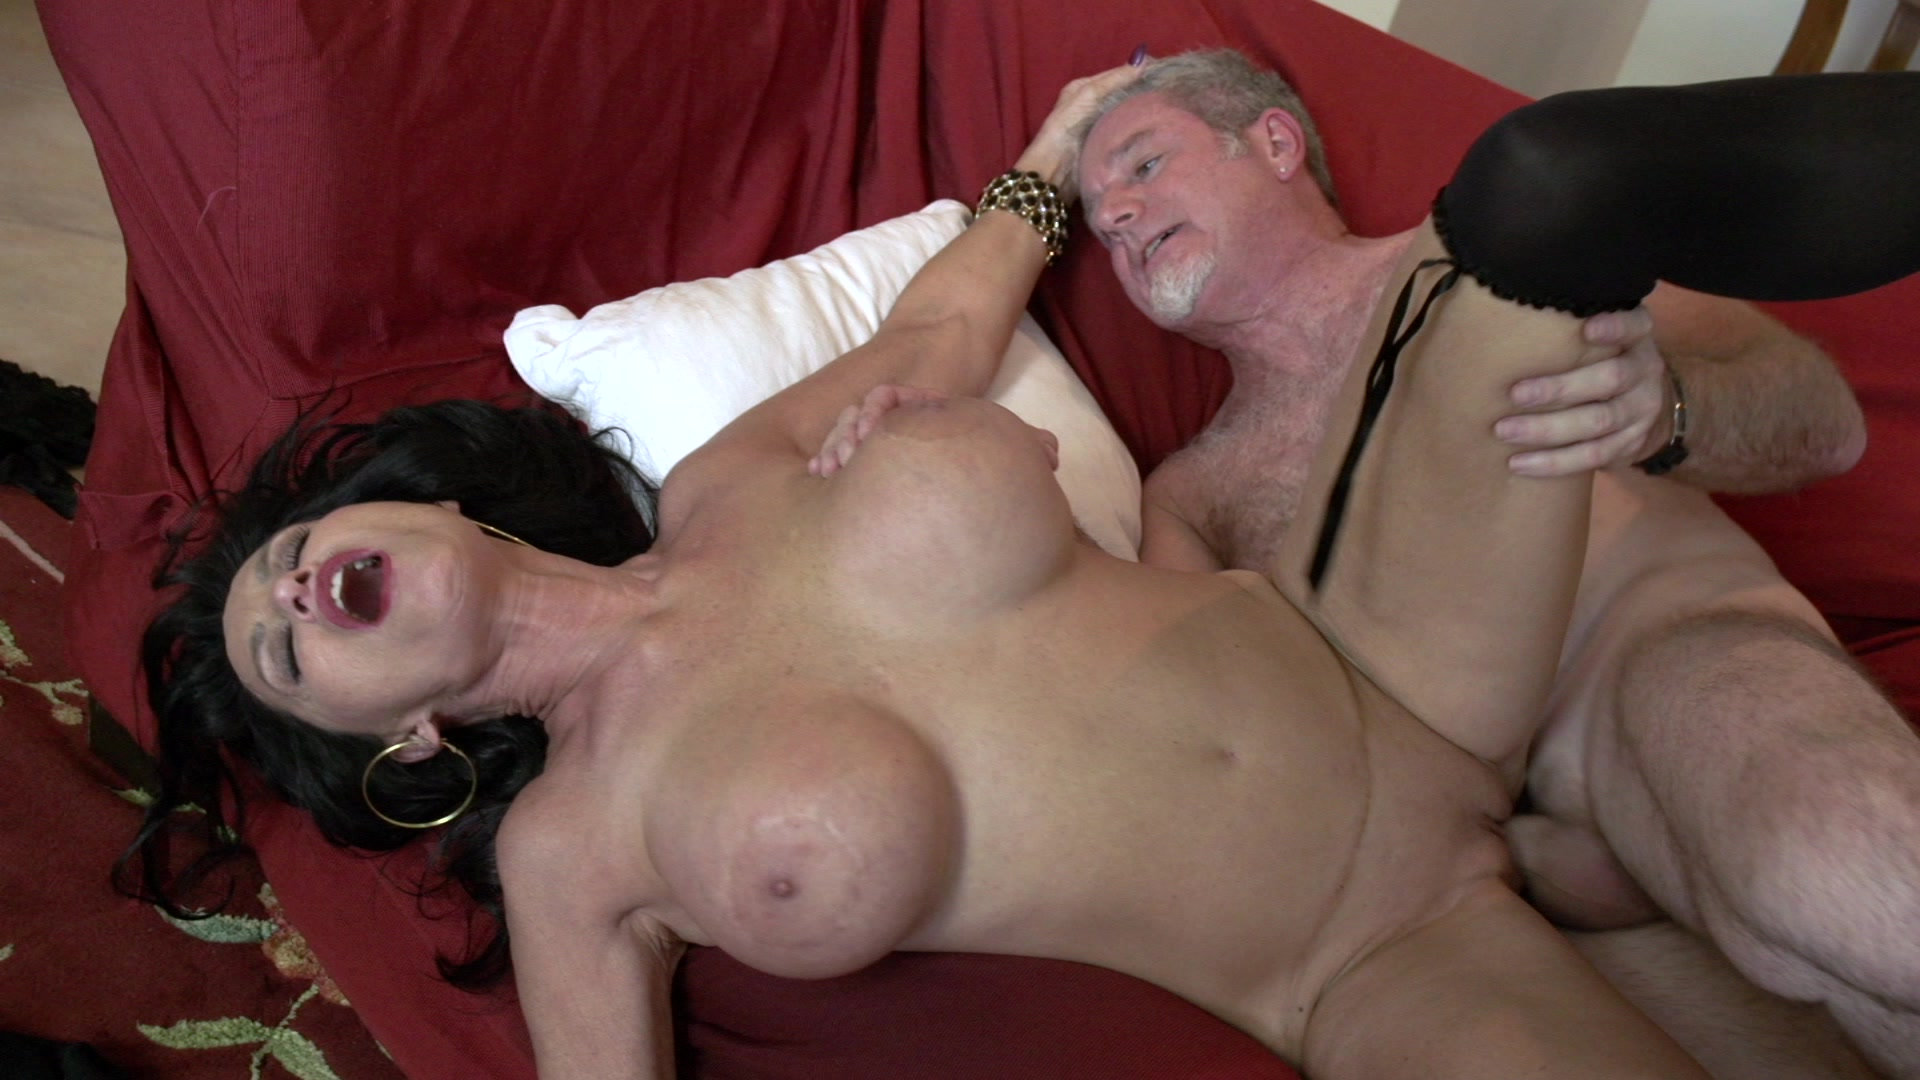 Busty Brunette MILF Gets Nailed on the Red Couch Starring: Rita Daniels